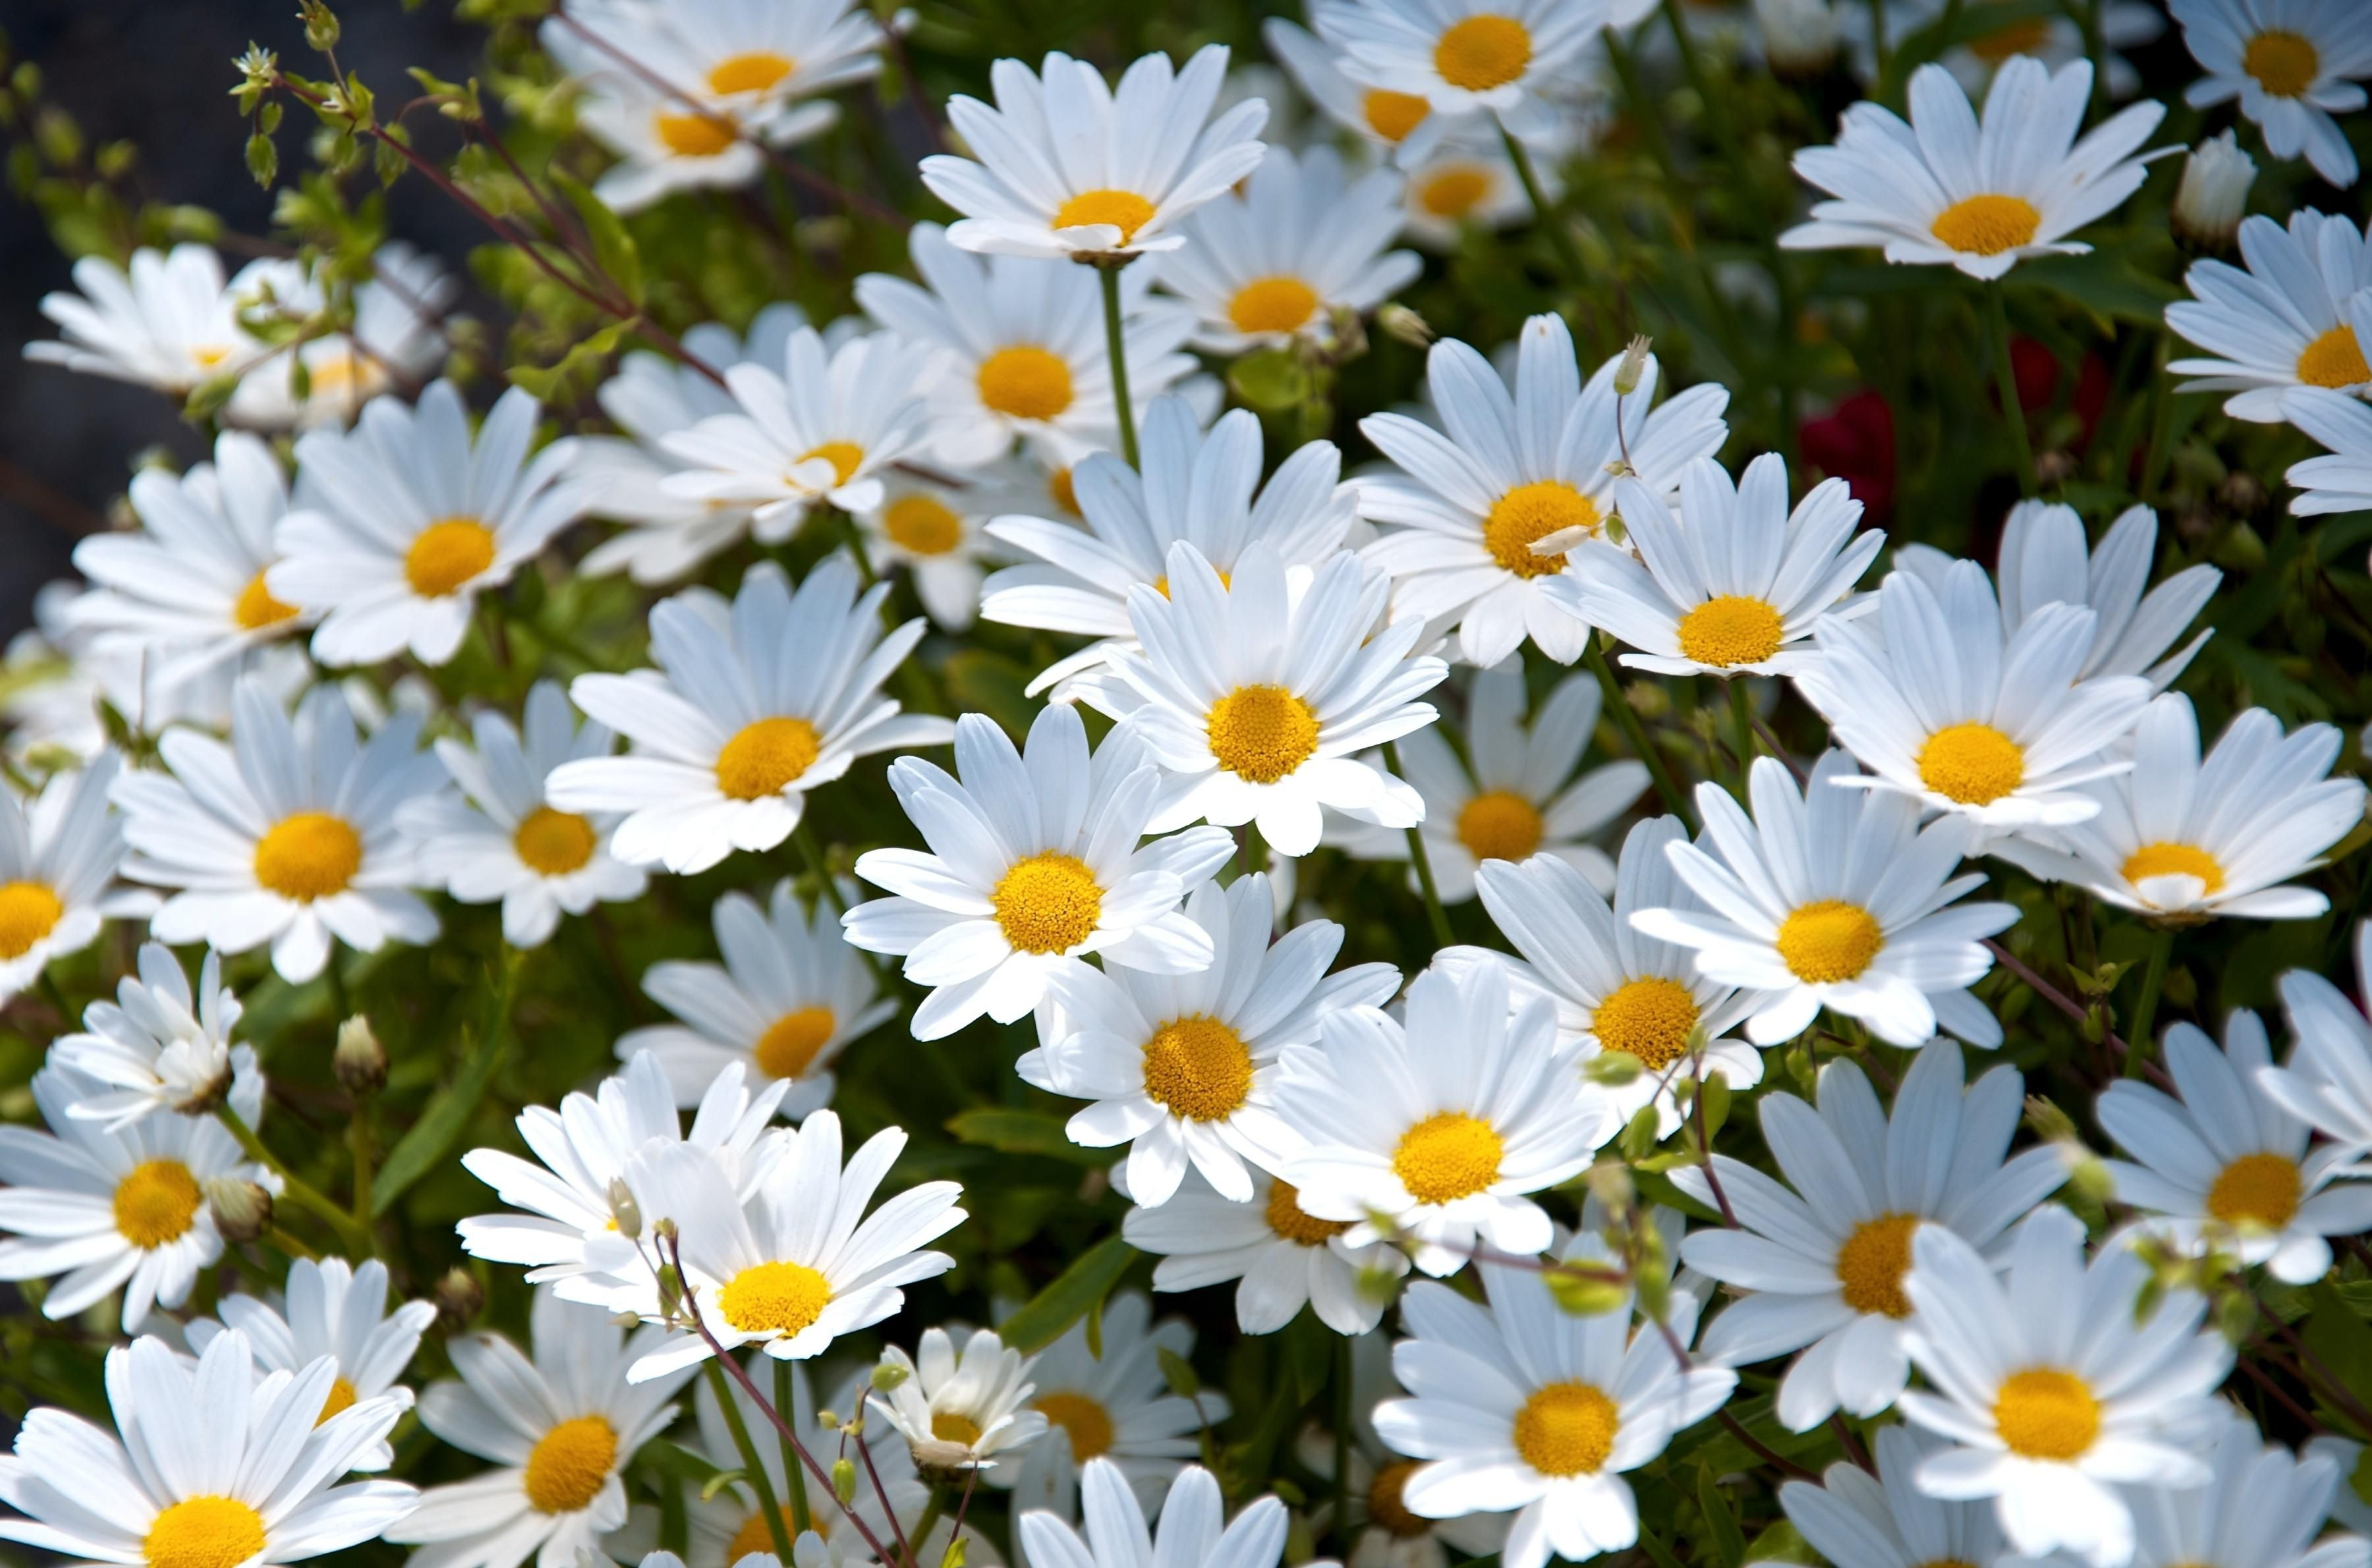 Pin By On Pinterest Flowers Daisy And Daisy Wallpaper